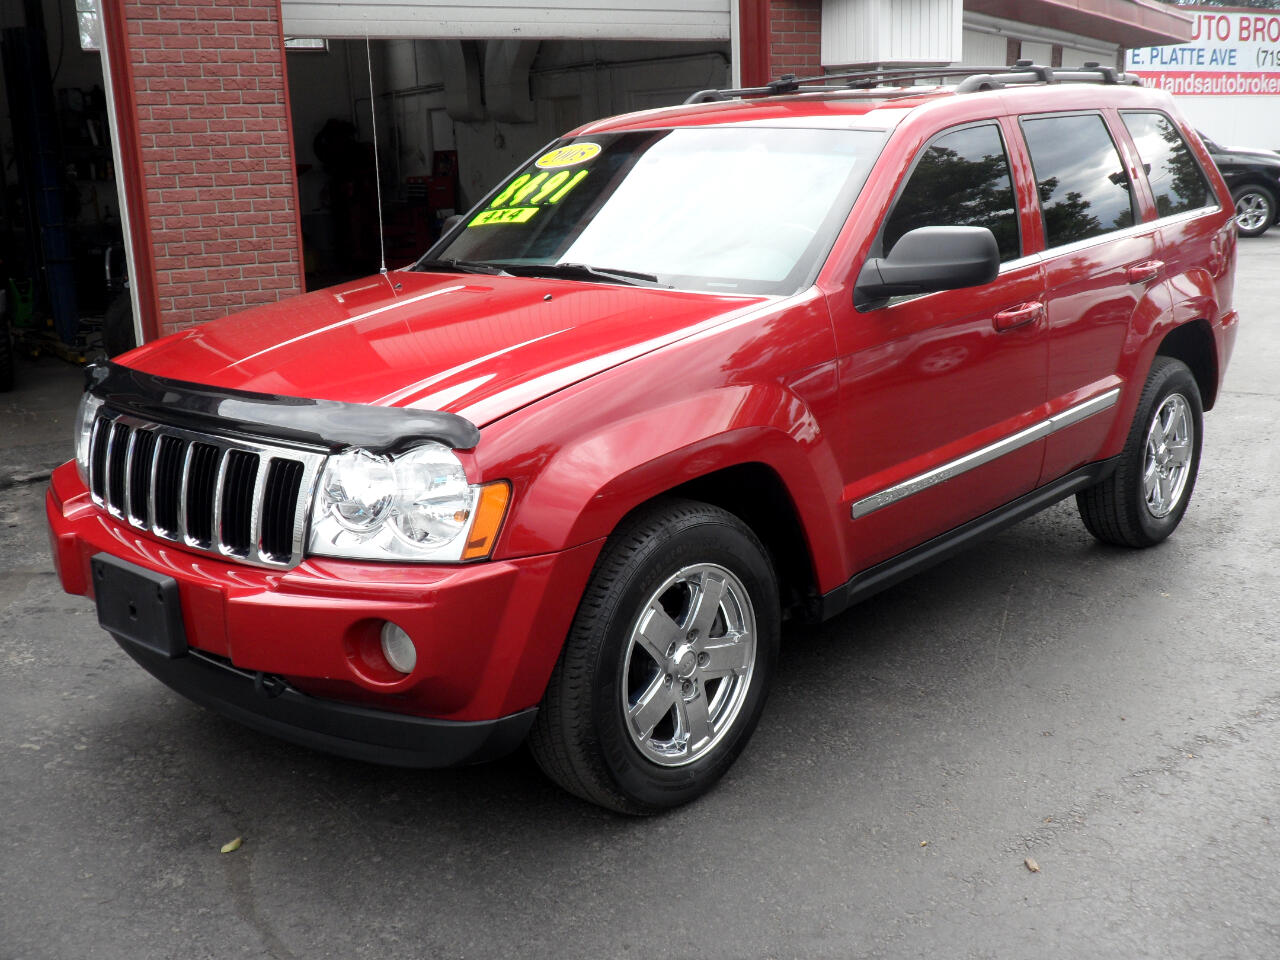 2005 Jeep Grand Cherokee 5.7L V8 LIMITED 4WD